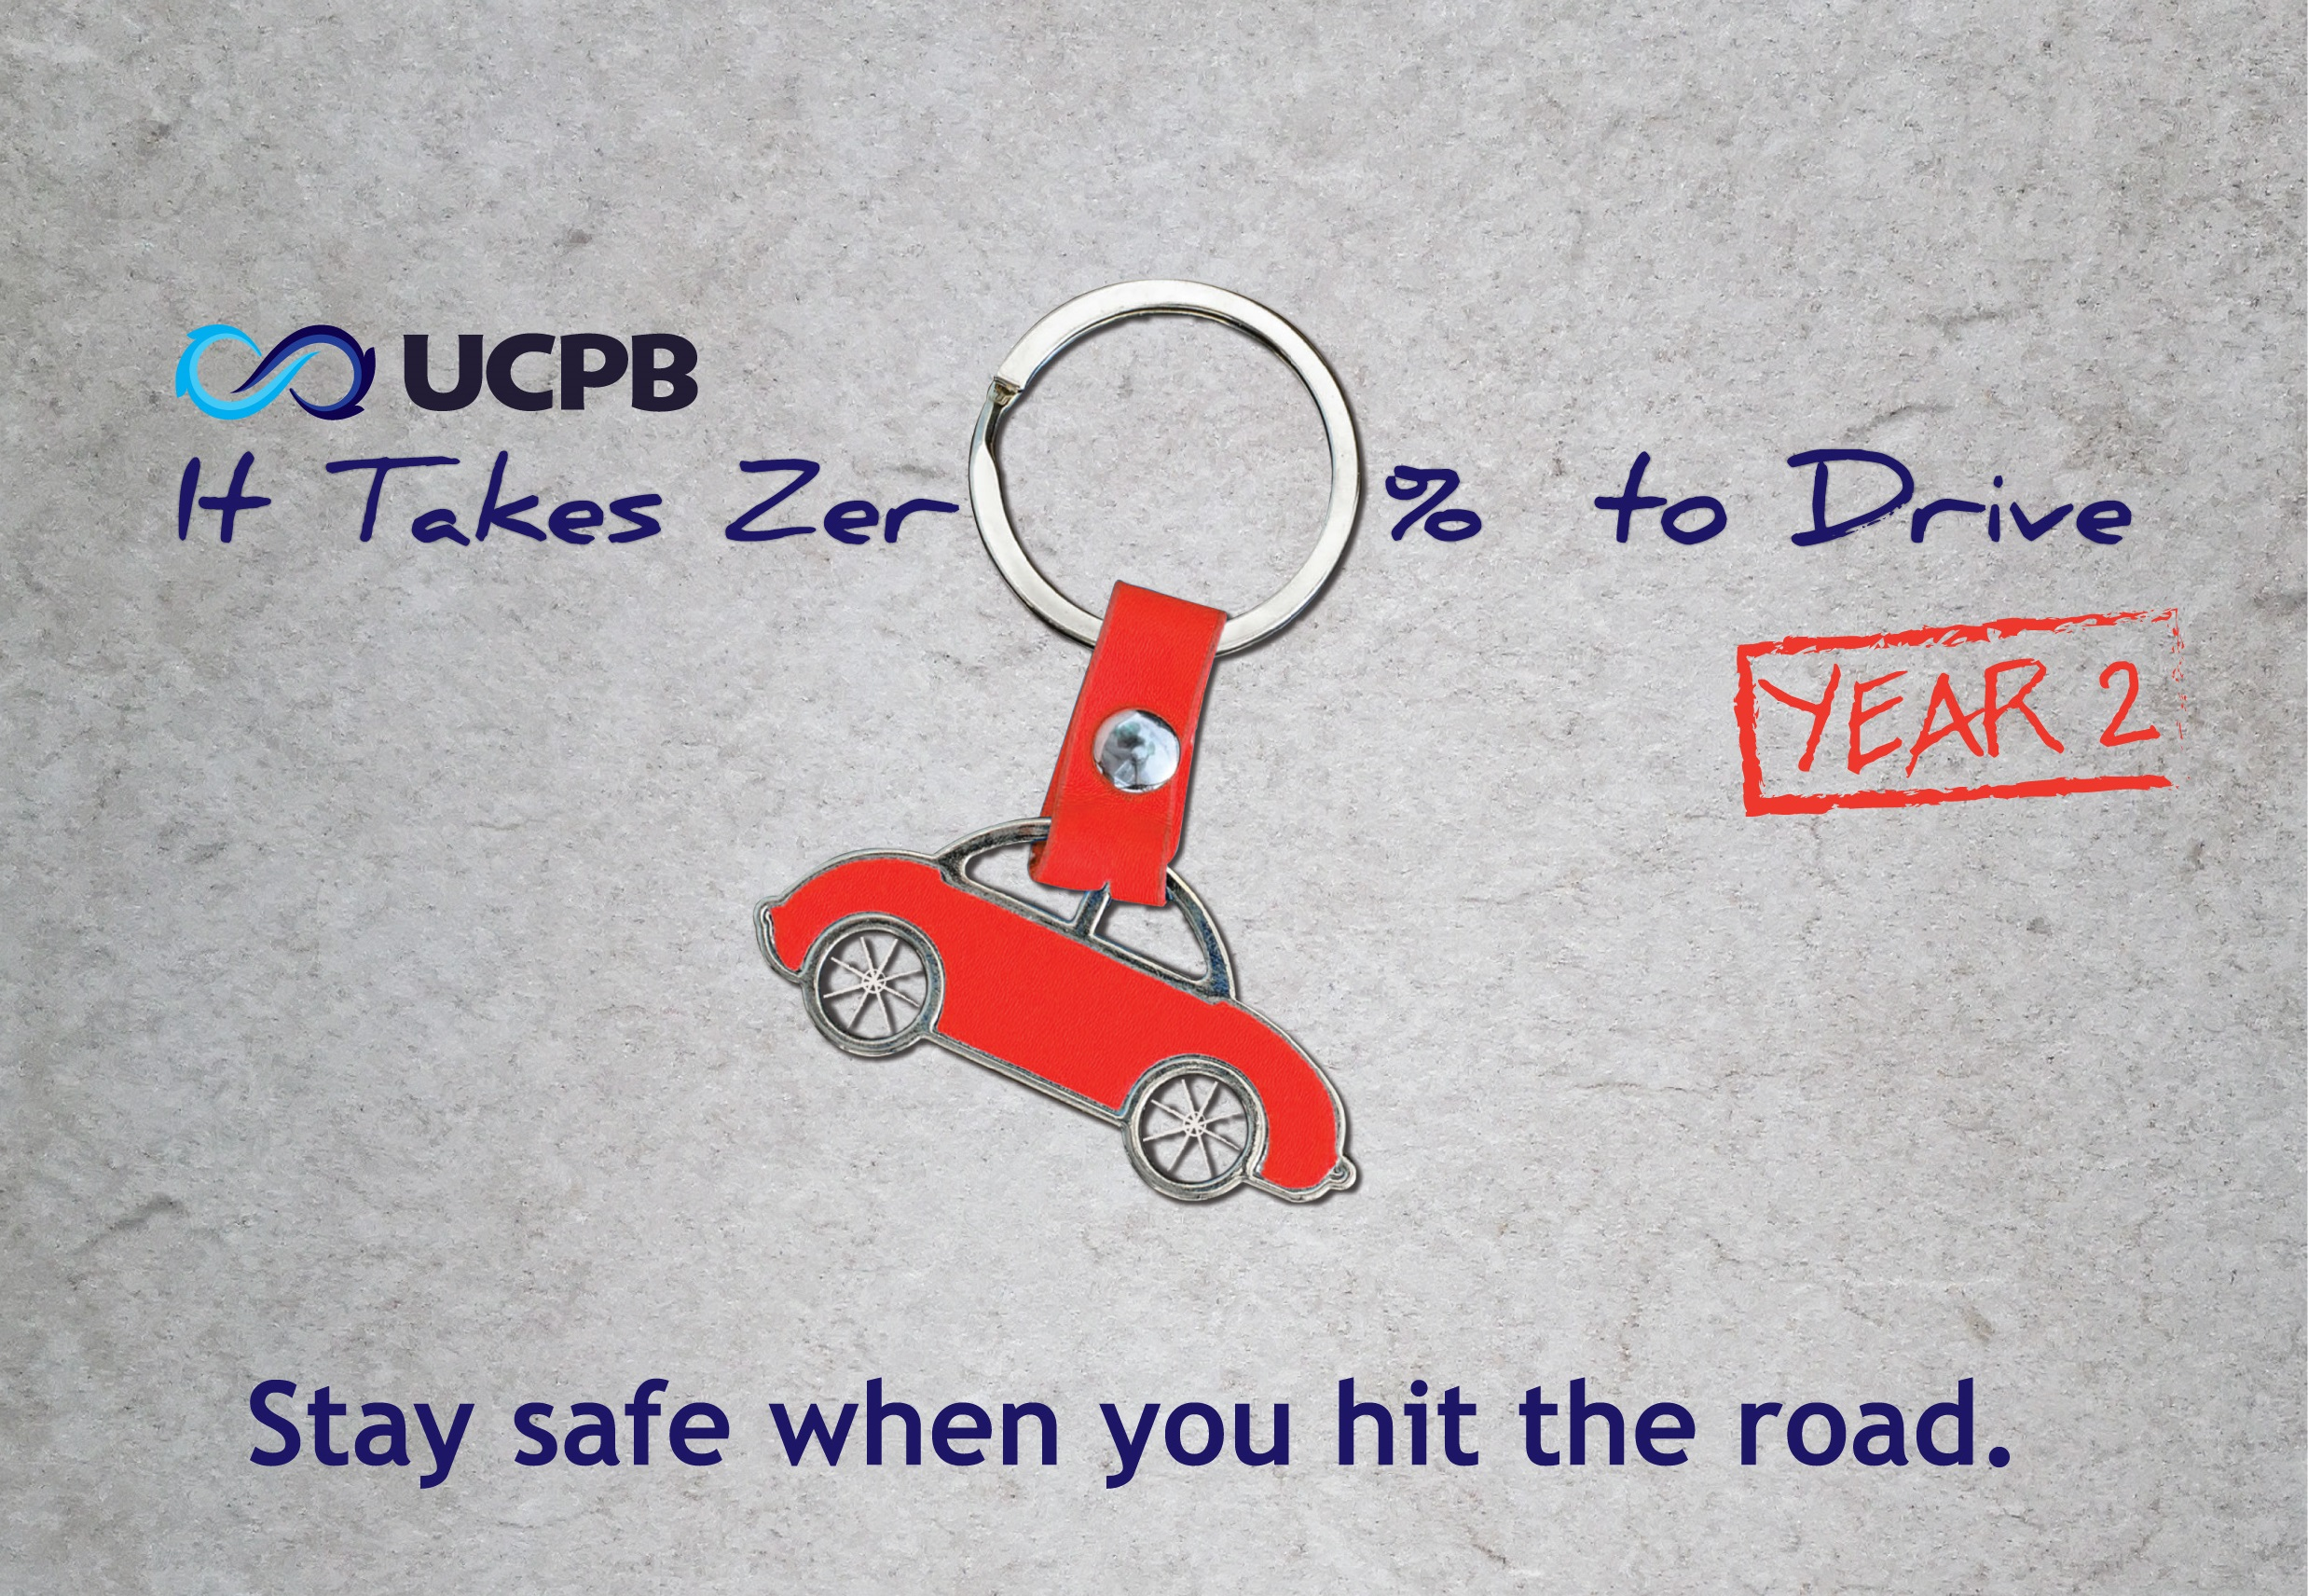 Ucpb Brings Back It Takes Zero To Drive Pre Owned Cars Promo